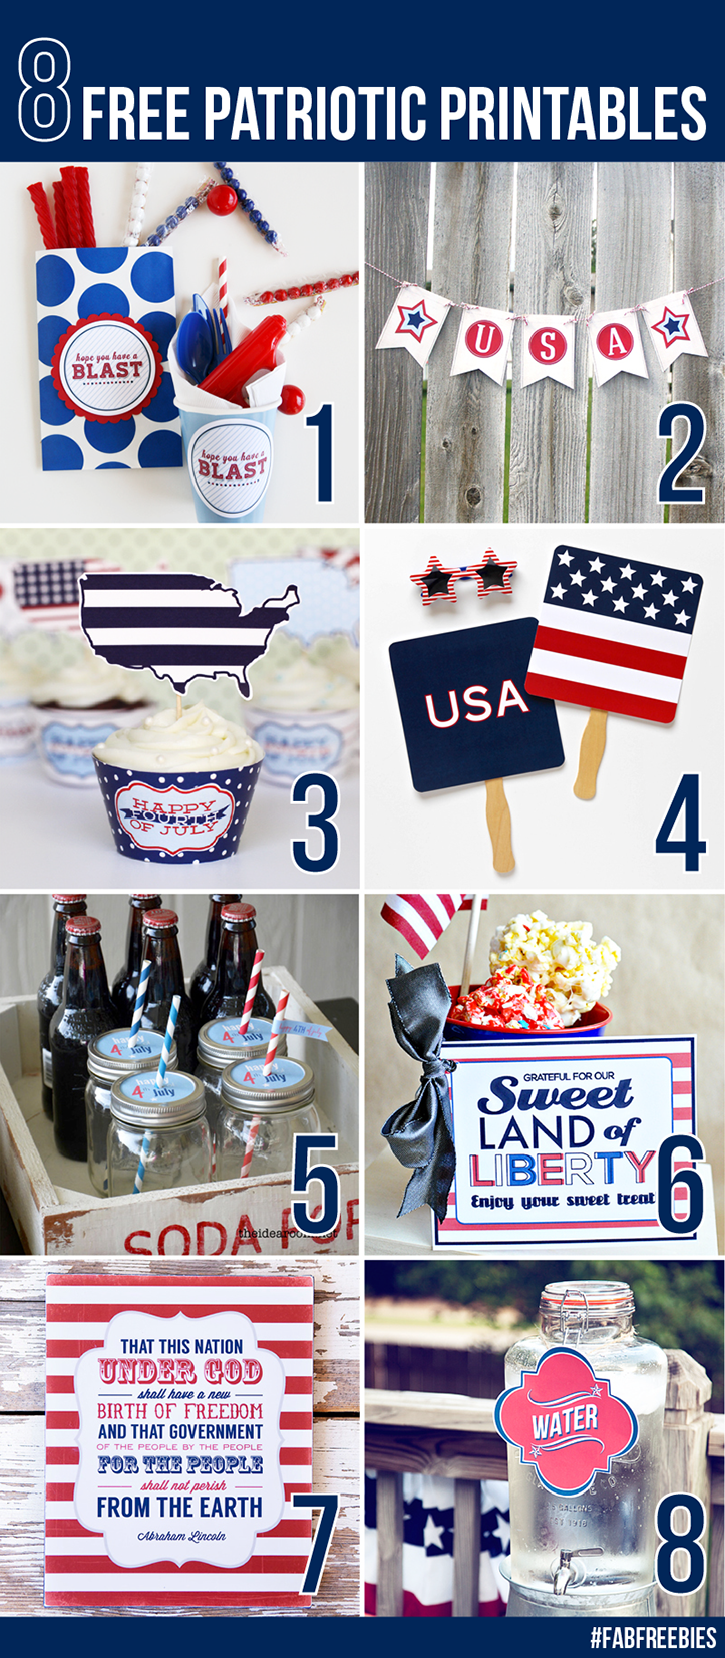 8 Free Patriotic Printables from your favorite bloggers!